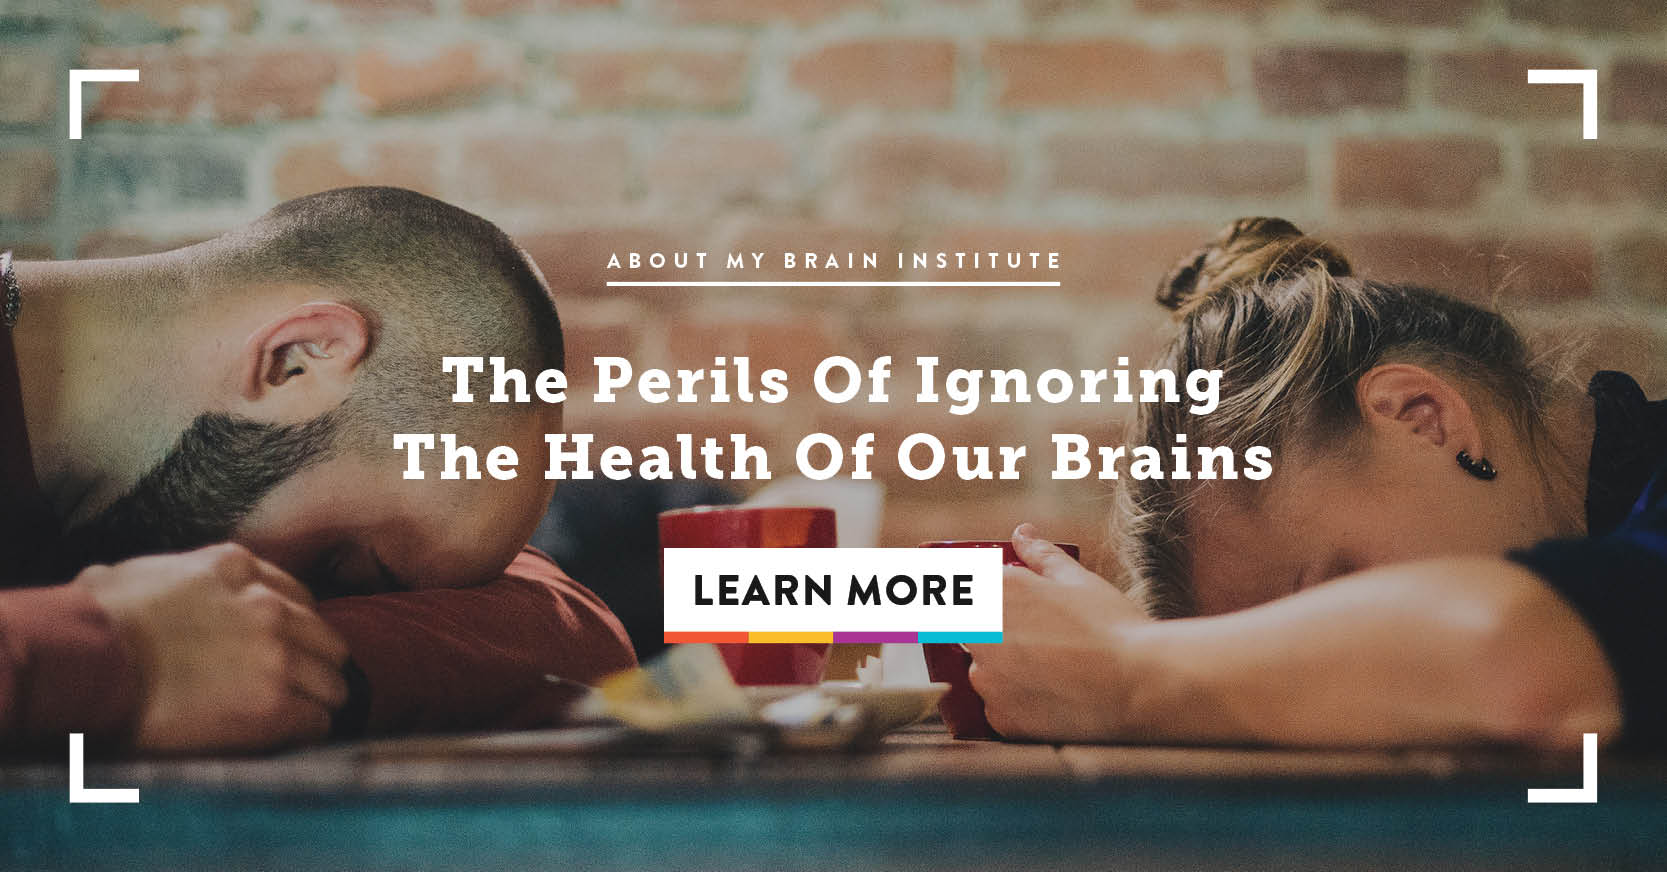 The Perils Of Ignoring The Health Of Our Brains